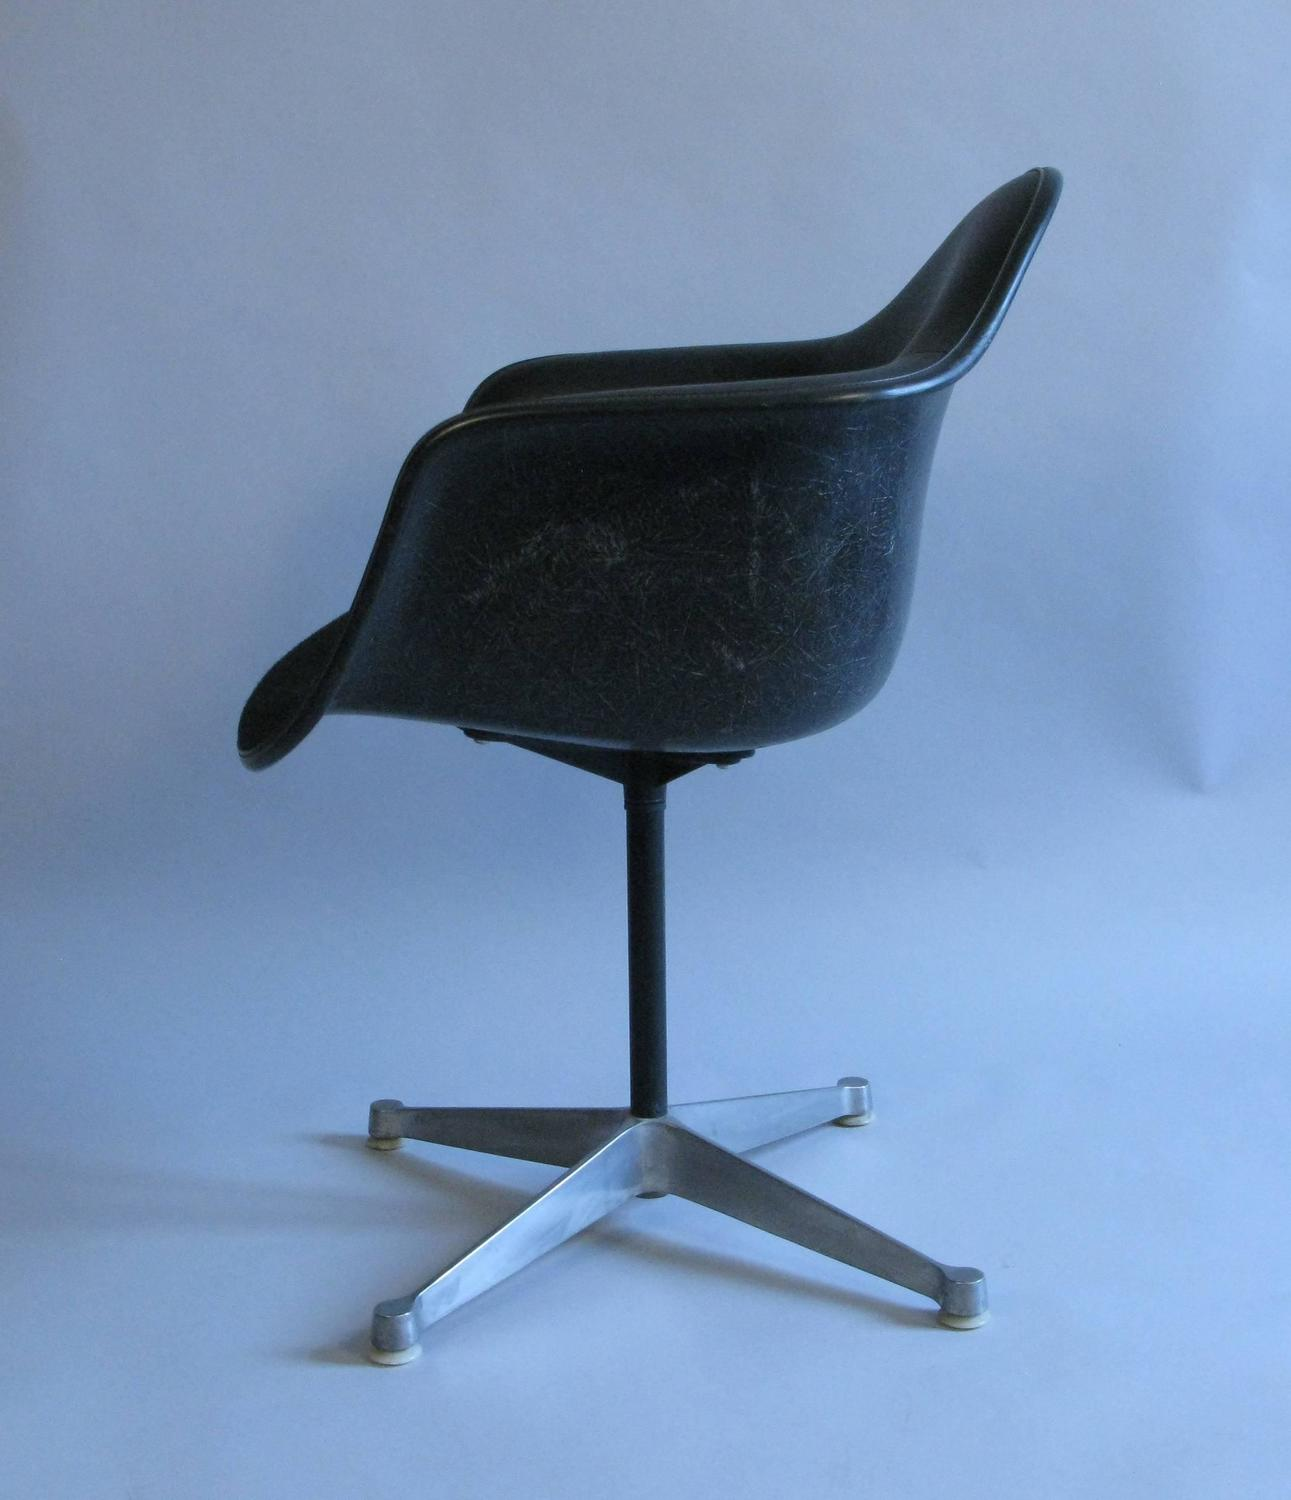 Pair of 1960s charles eames for herman miller swivel chairs at 1stdibs - Herman miller bucket chair ...